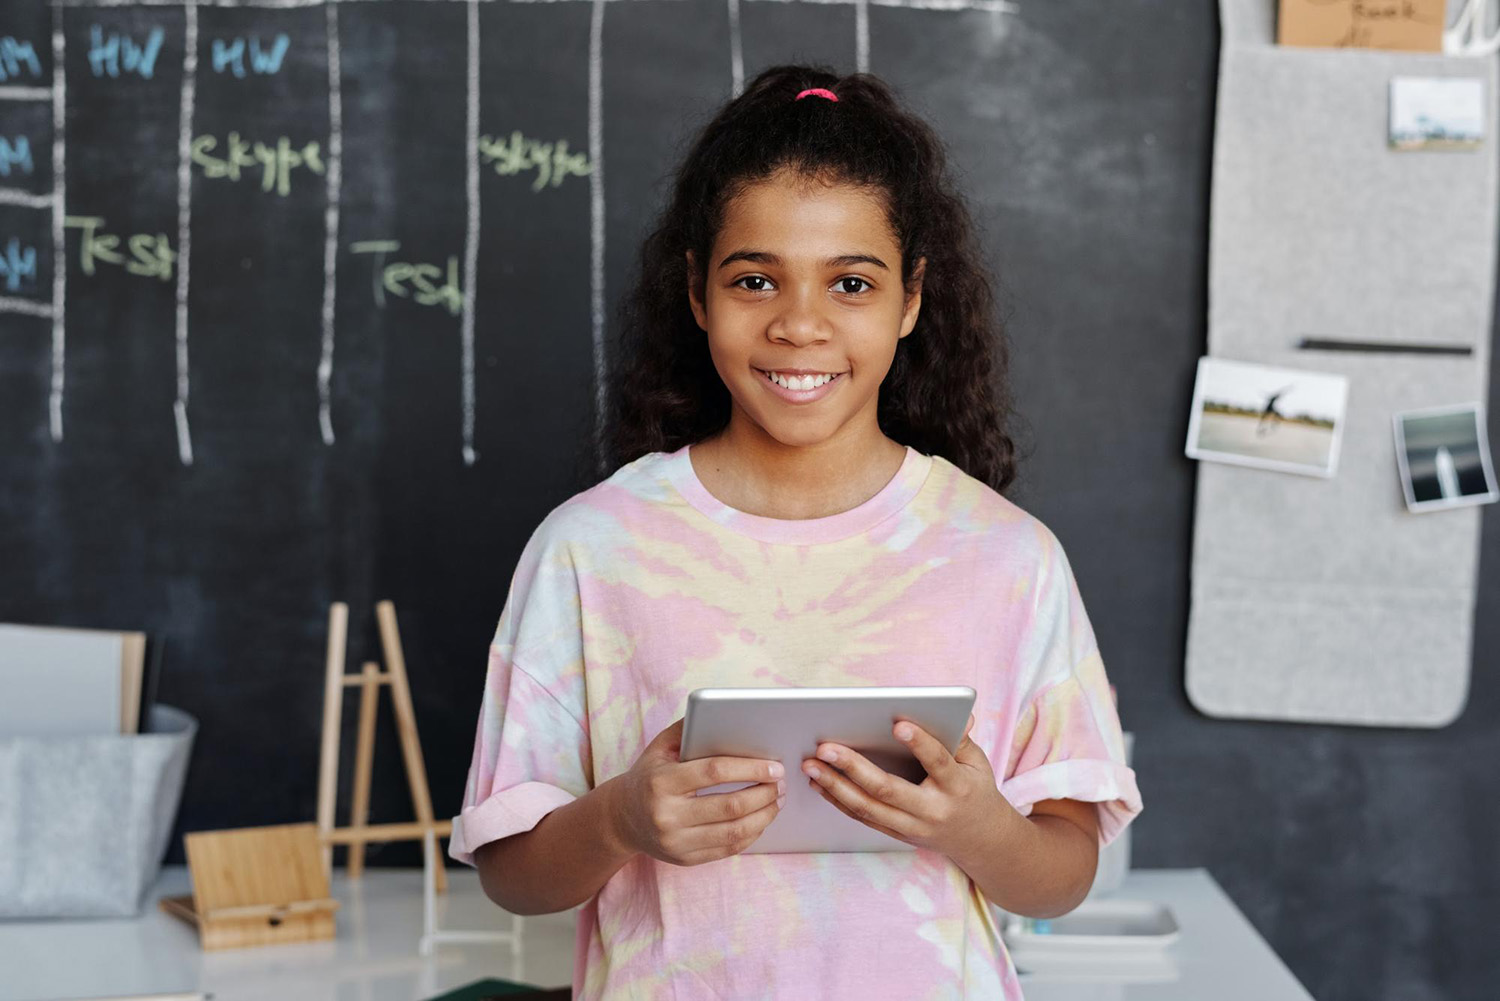 Student holding a tablet and smiling in a classroom